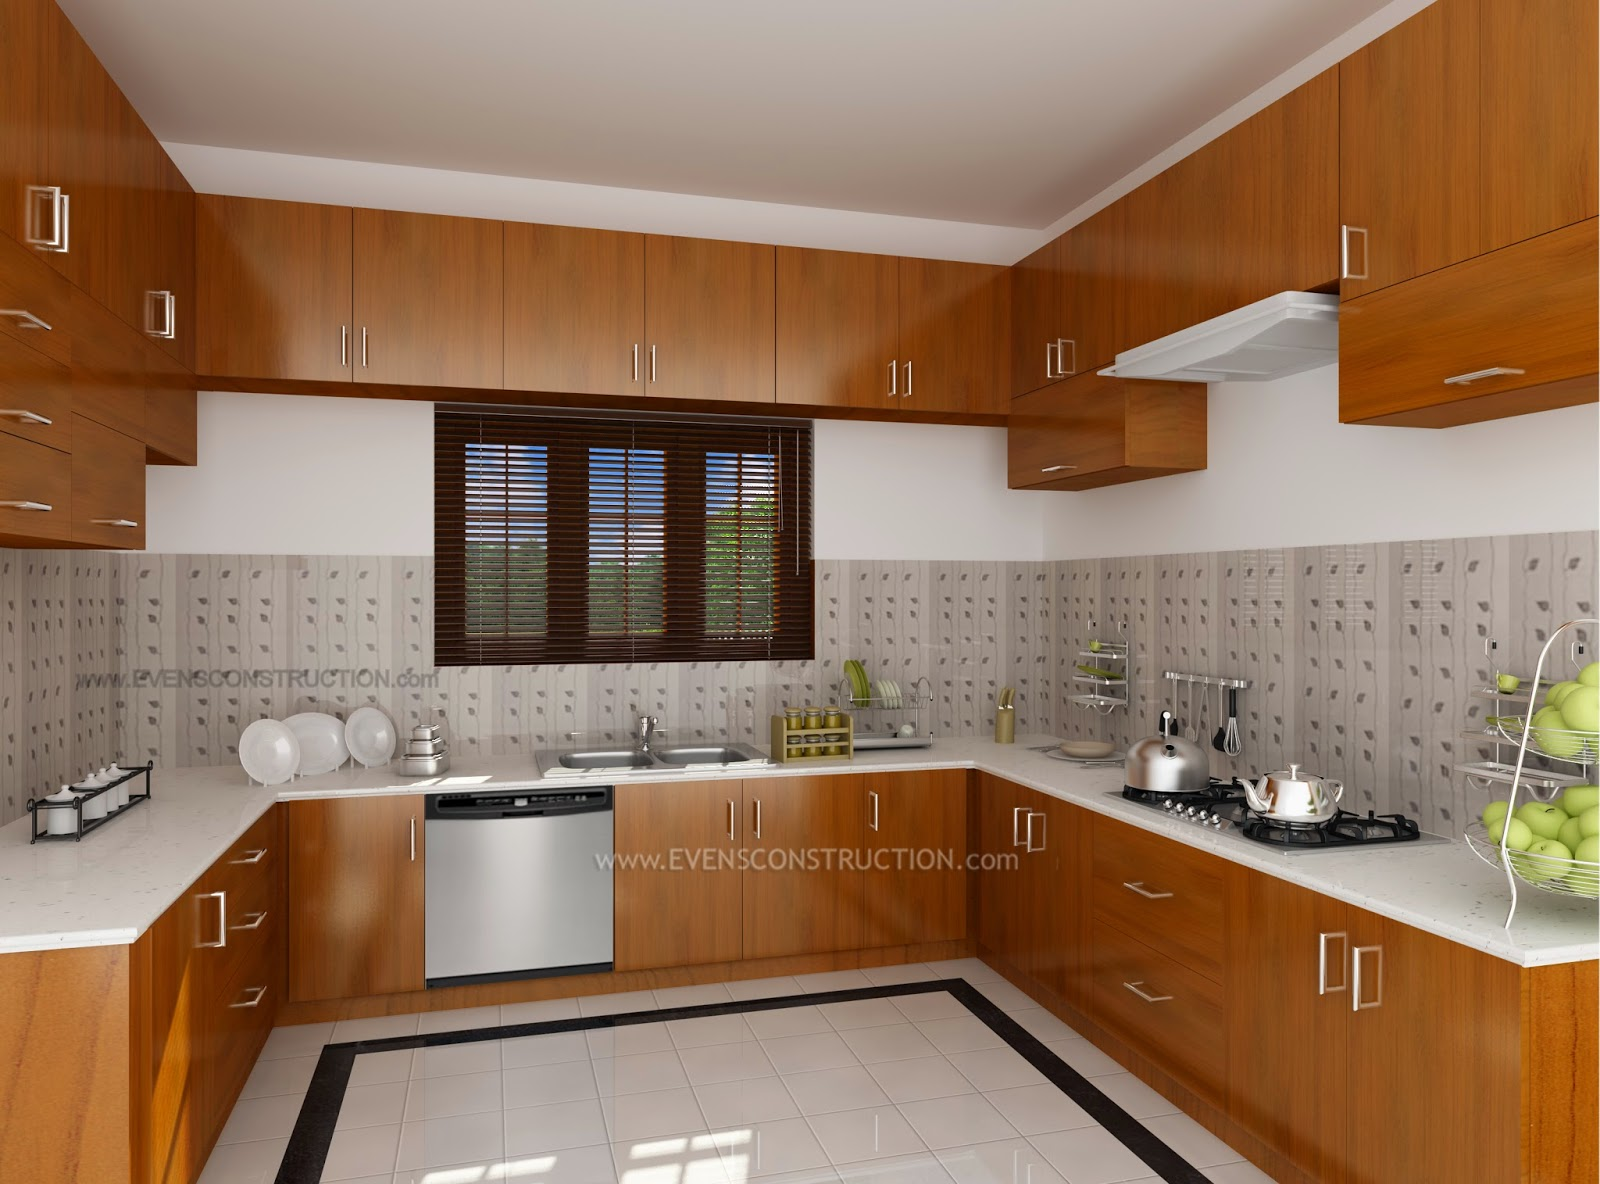 Evens construction pvt ltd october 2014 for Kerala home interior designs photos